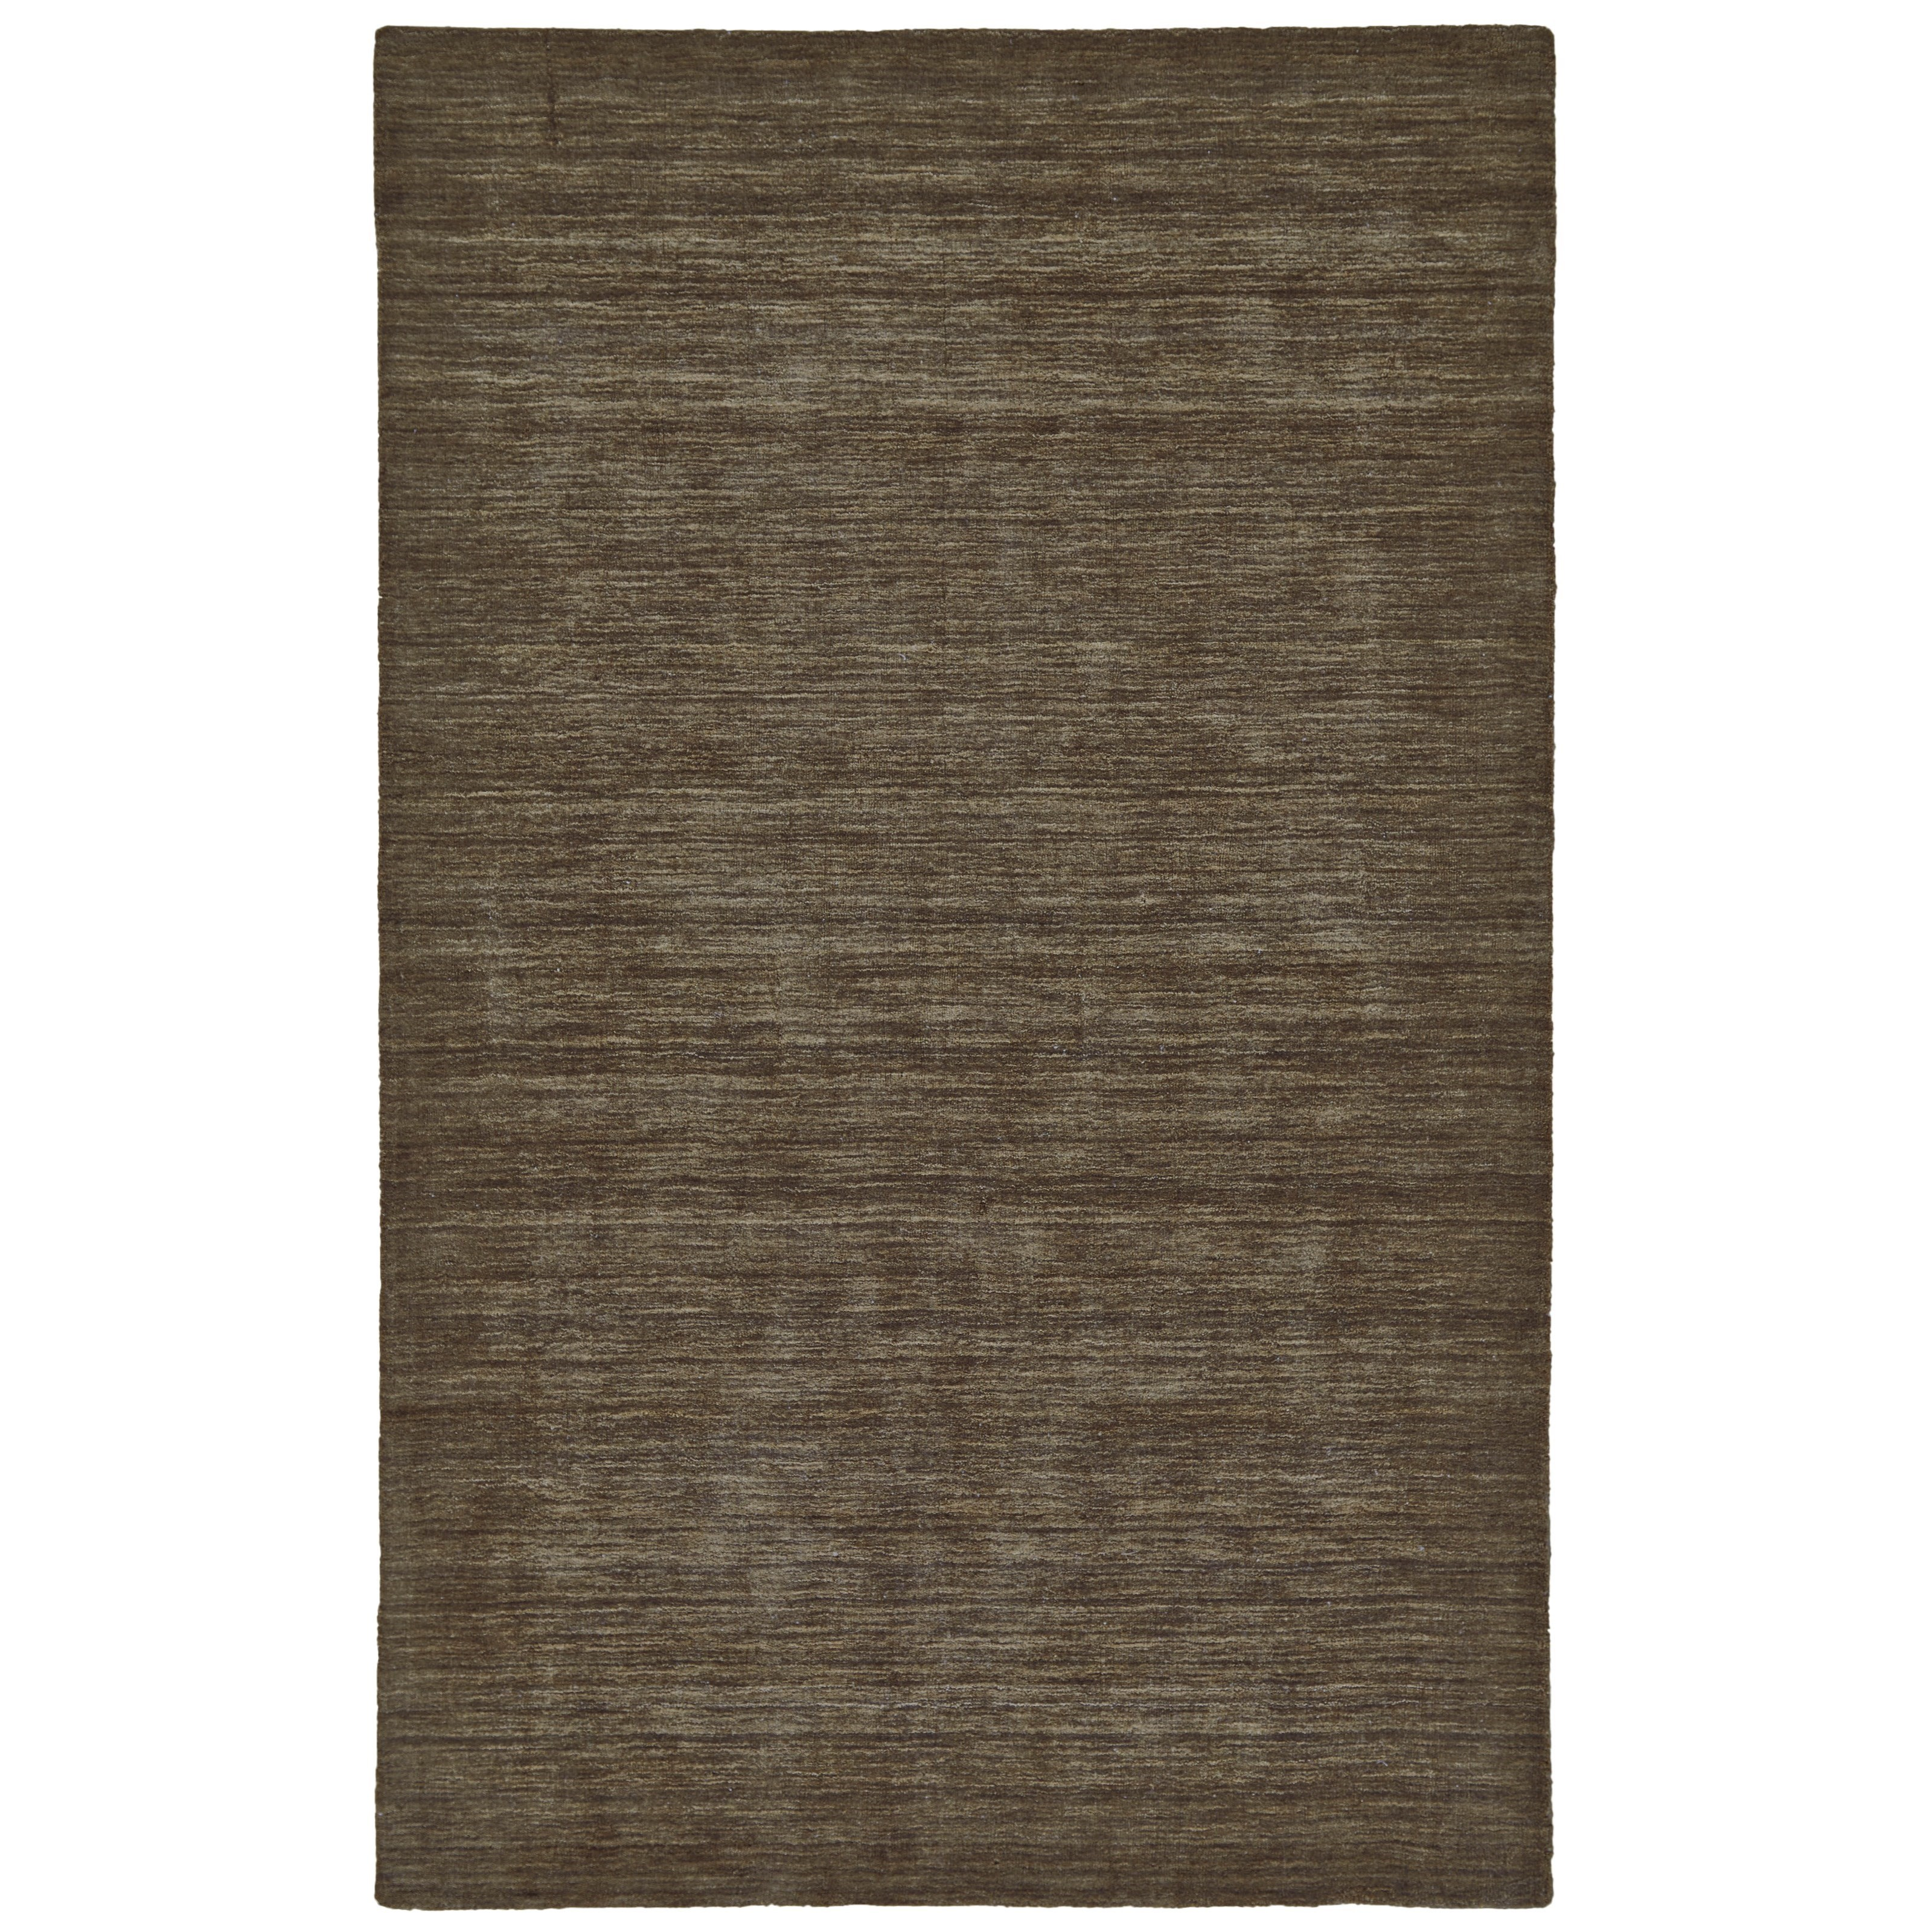 "Luna Brown 3'-6"" x 5'-6"" Area Rug by Feizy Rugs at Sprintz Furniture"